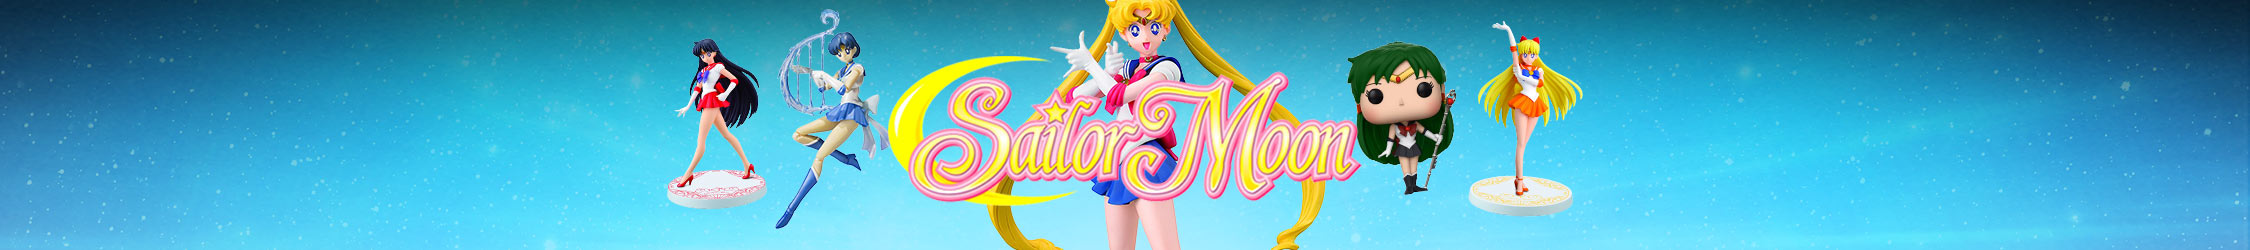 6d49e49c59d Sailor Moon is a media franchise created by manga artist Naoko Takeuchi. Sailor  Moon redefined the magical-girl genre